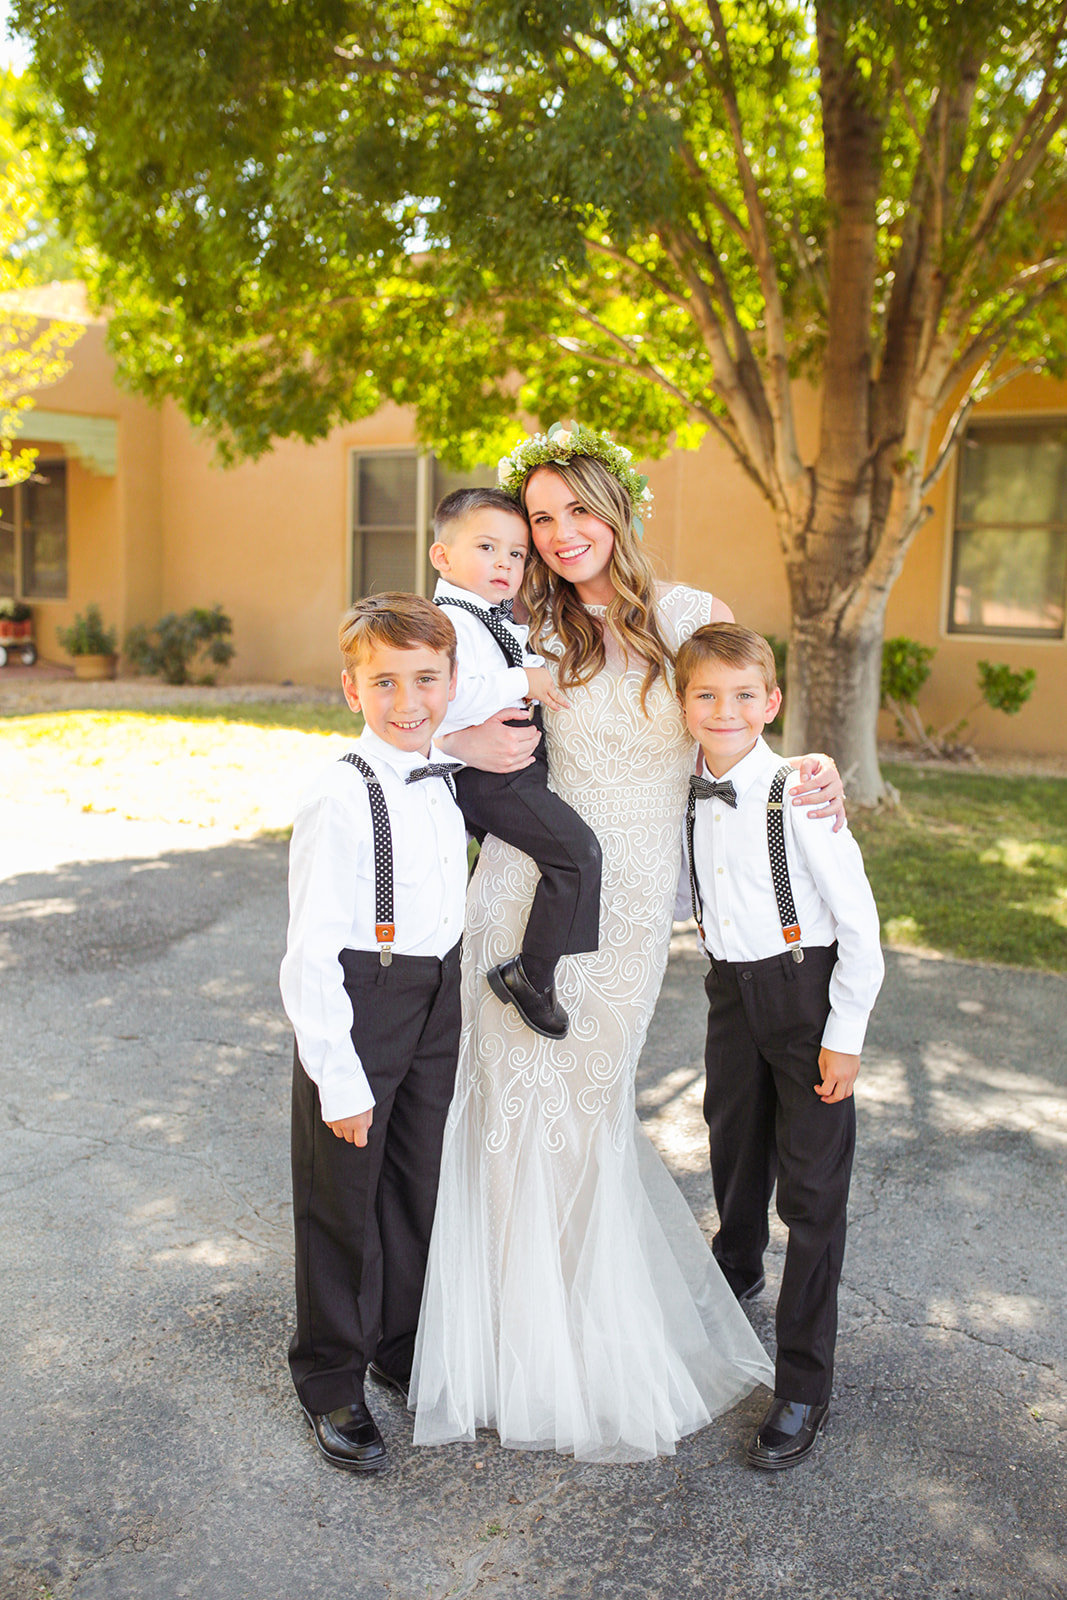 Albuquerque Wedding Photographer_Catholic Wedding_www.tylerbrooke.com_Kate Kauffman_021